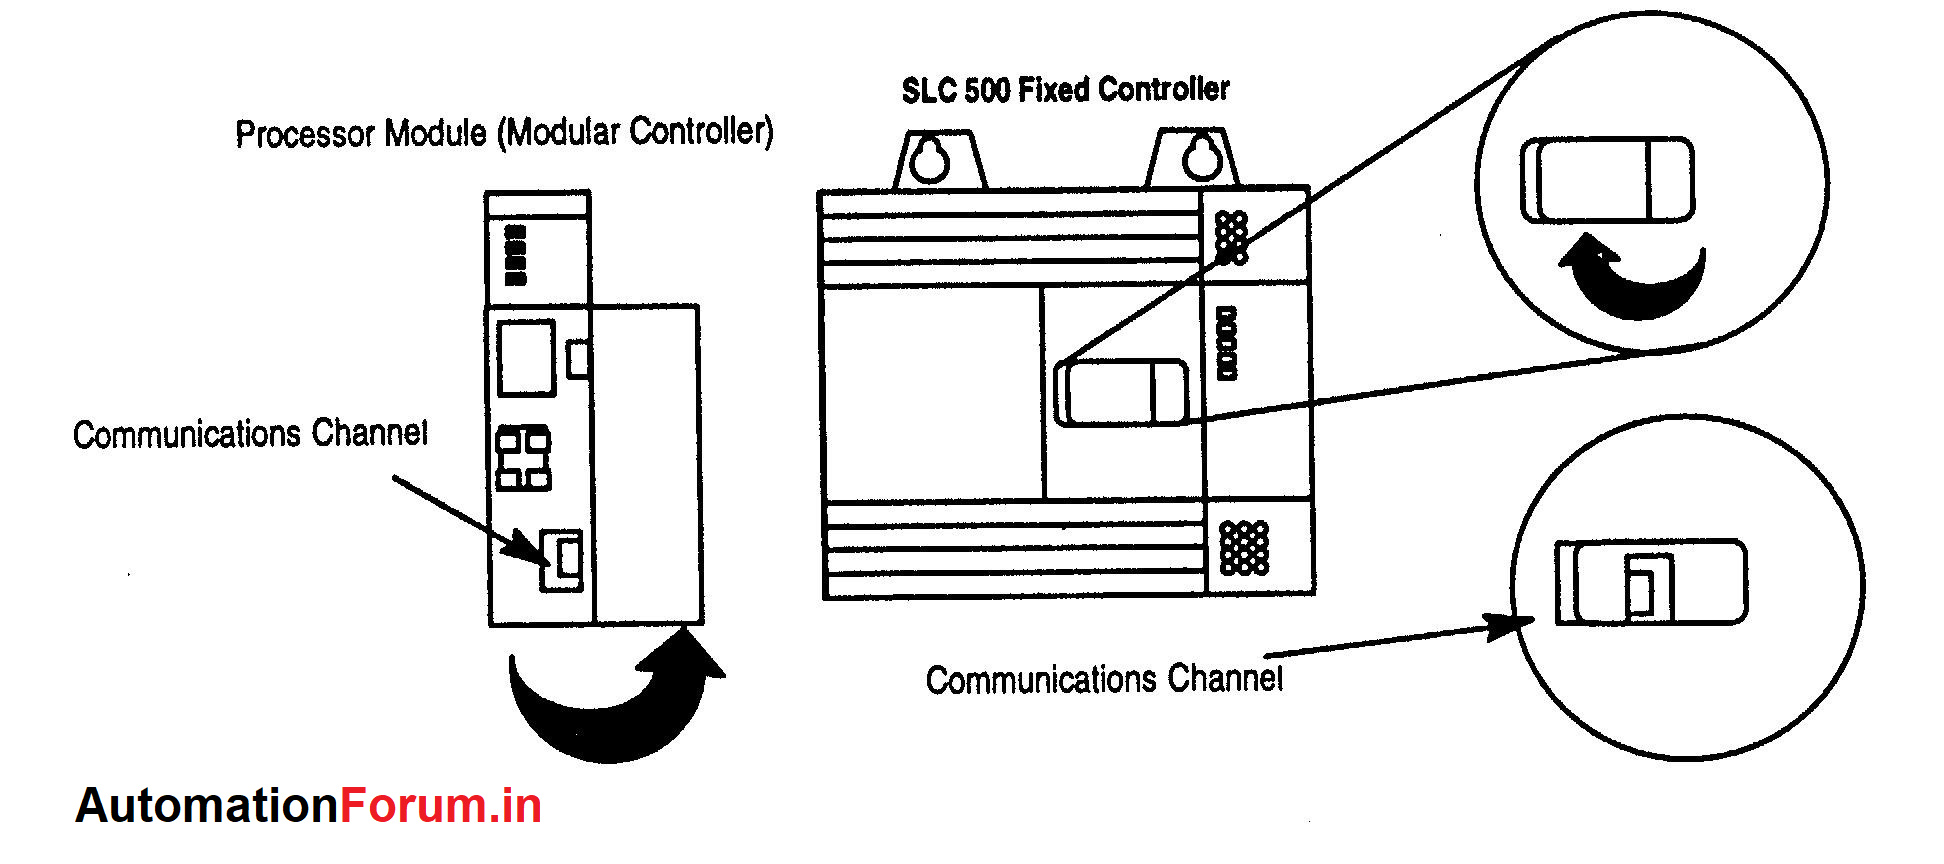 How To Configure And Connect Online A Allen Bradley Plc